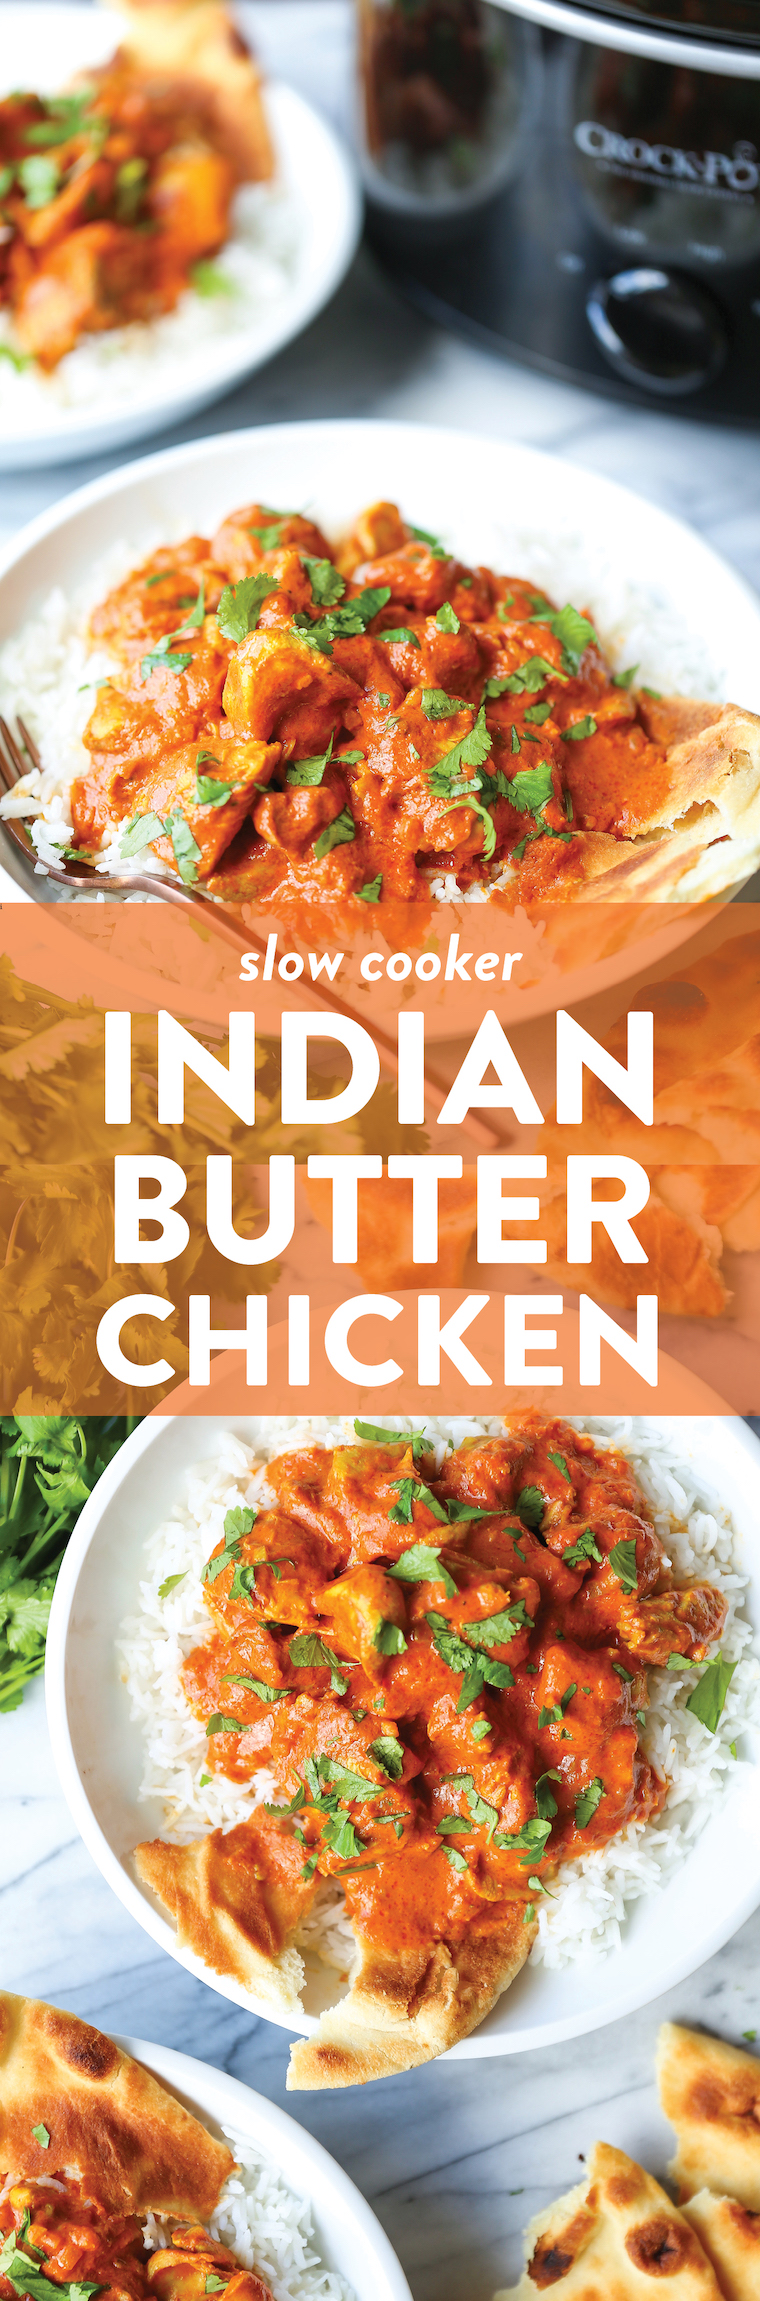 Slow Cooker Indian Butter Chicken Recipe Damn Delicious